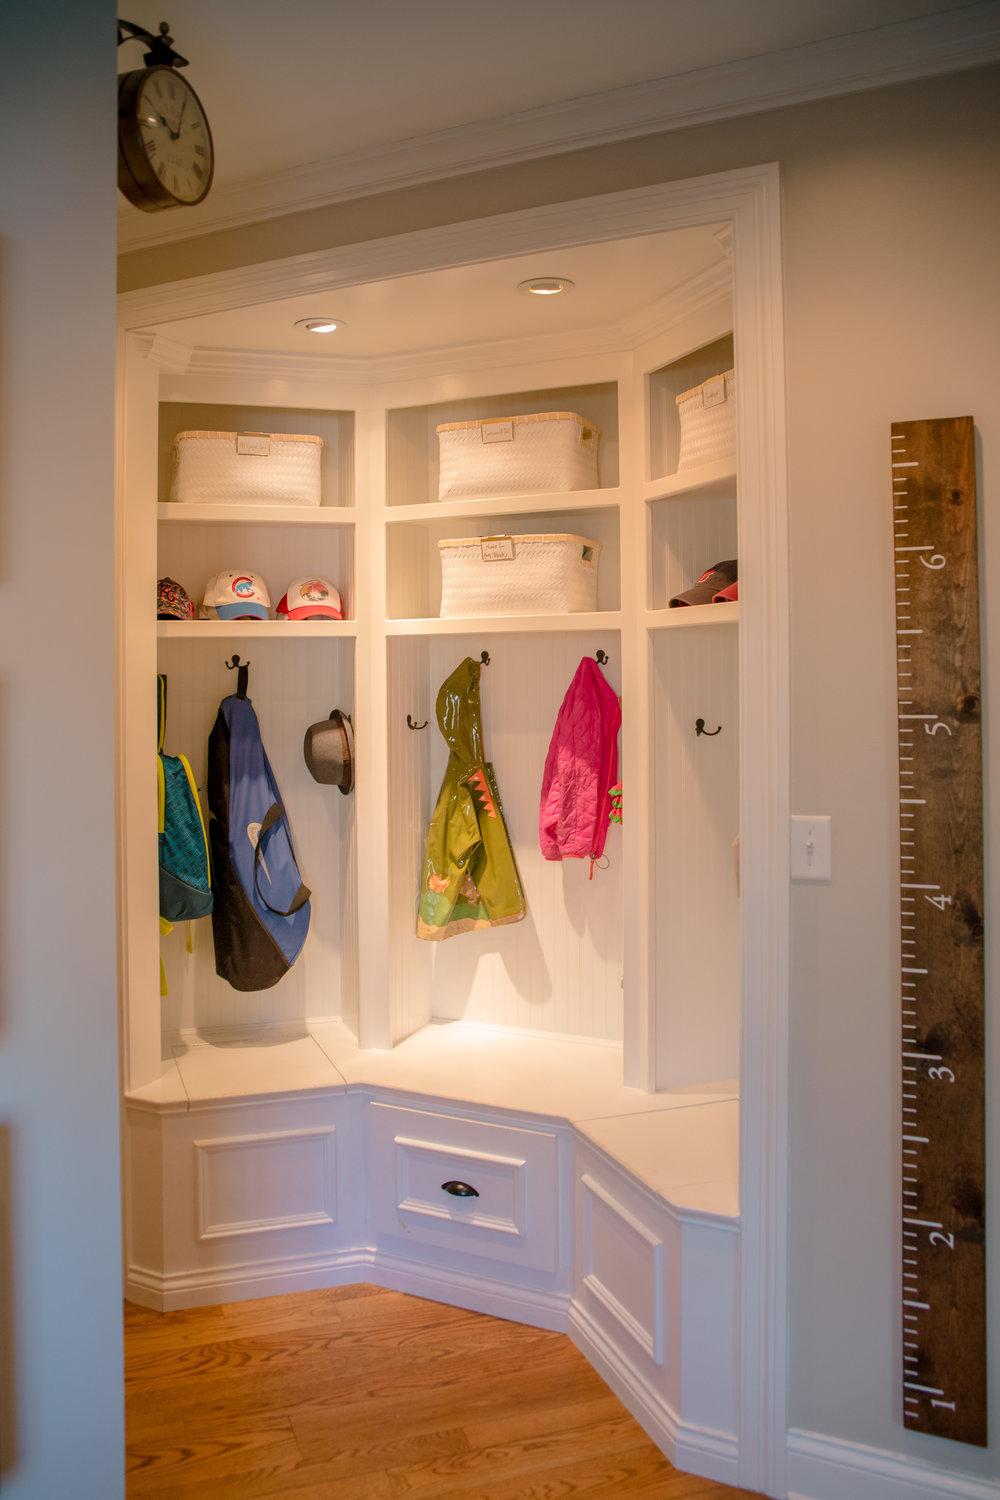 An organized mudroom helps get everyone out the door a little quicker in the morning.